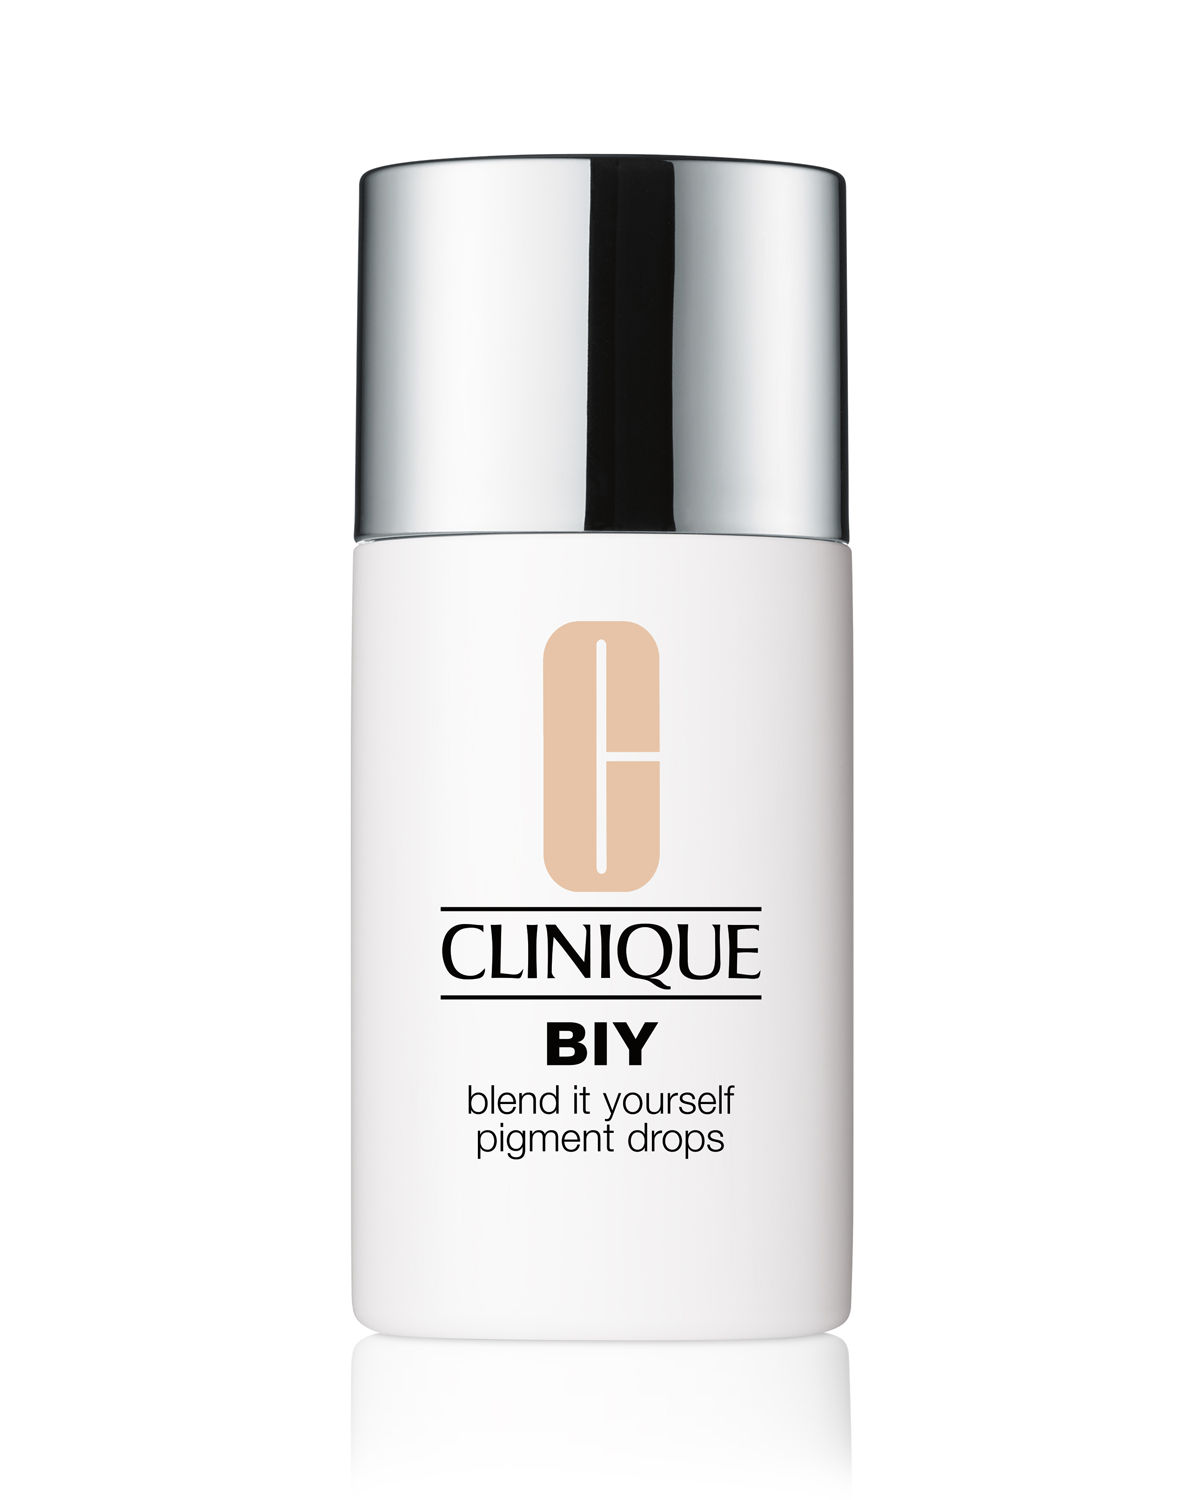 Clinique BIY & #153 Blend It Yourself Pigment Drops